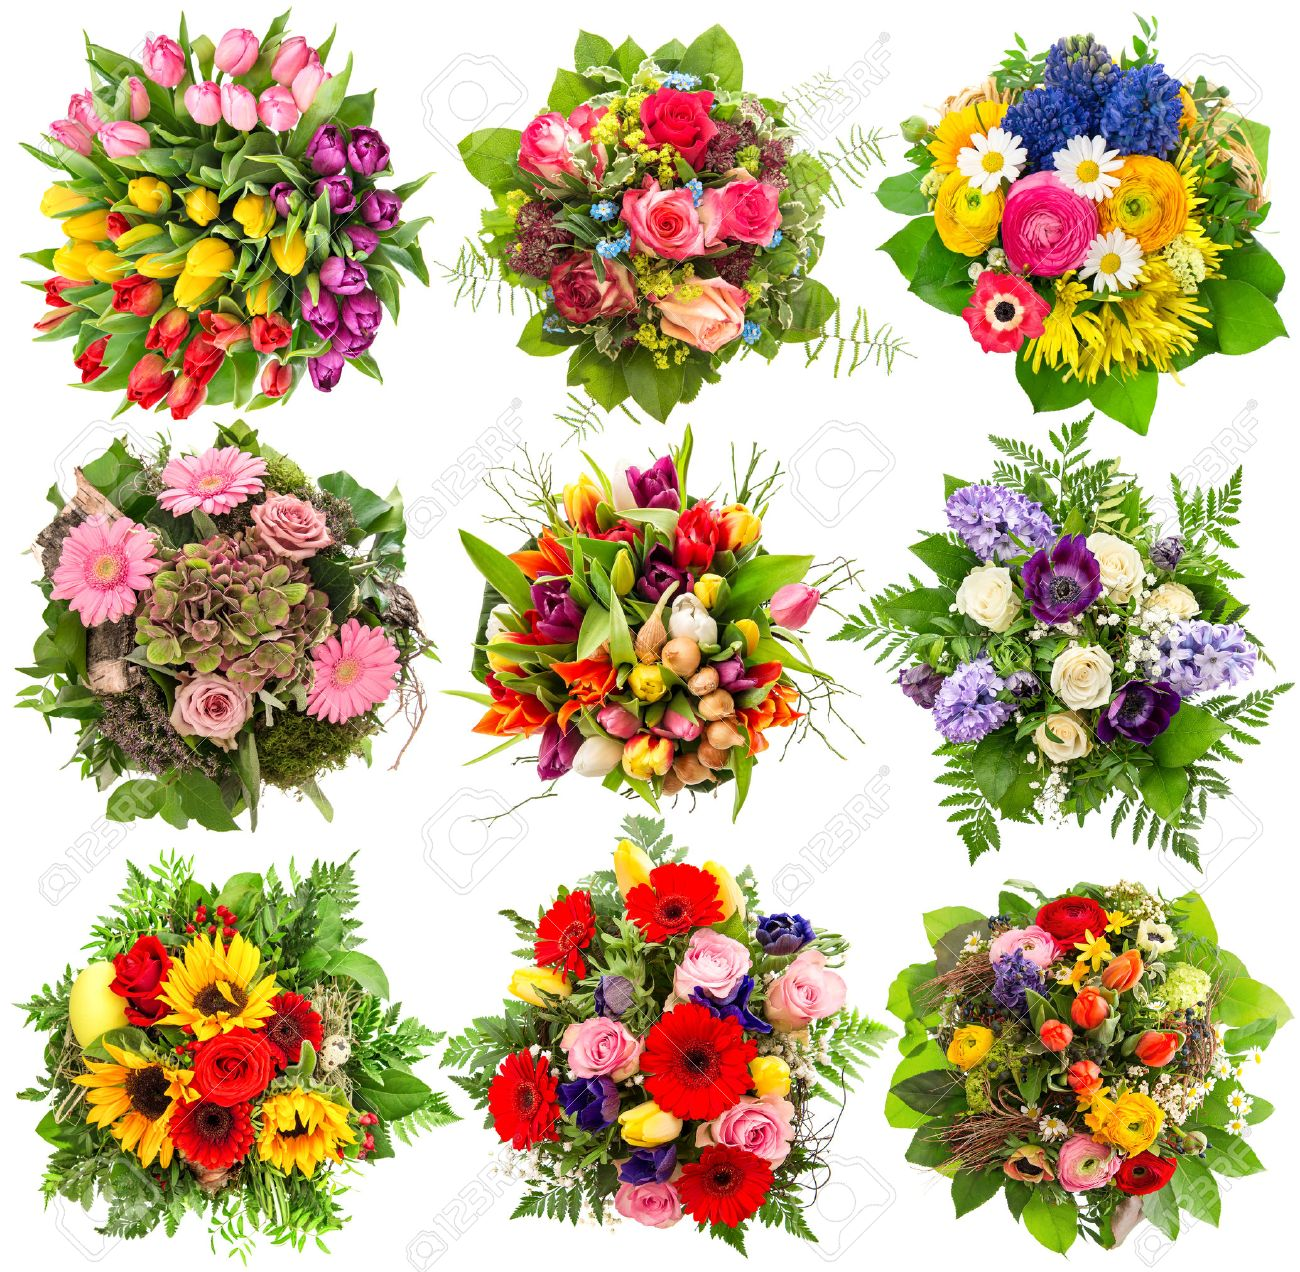 Birthday flowers heres to celebrating you birthday wishes izmirmasajfo Choice Image